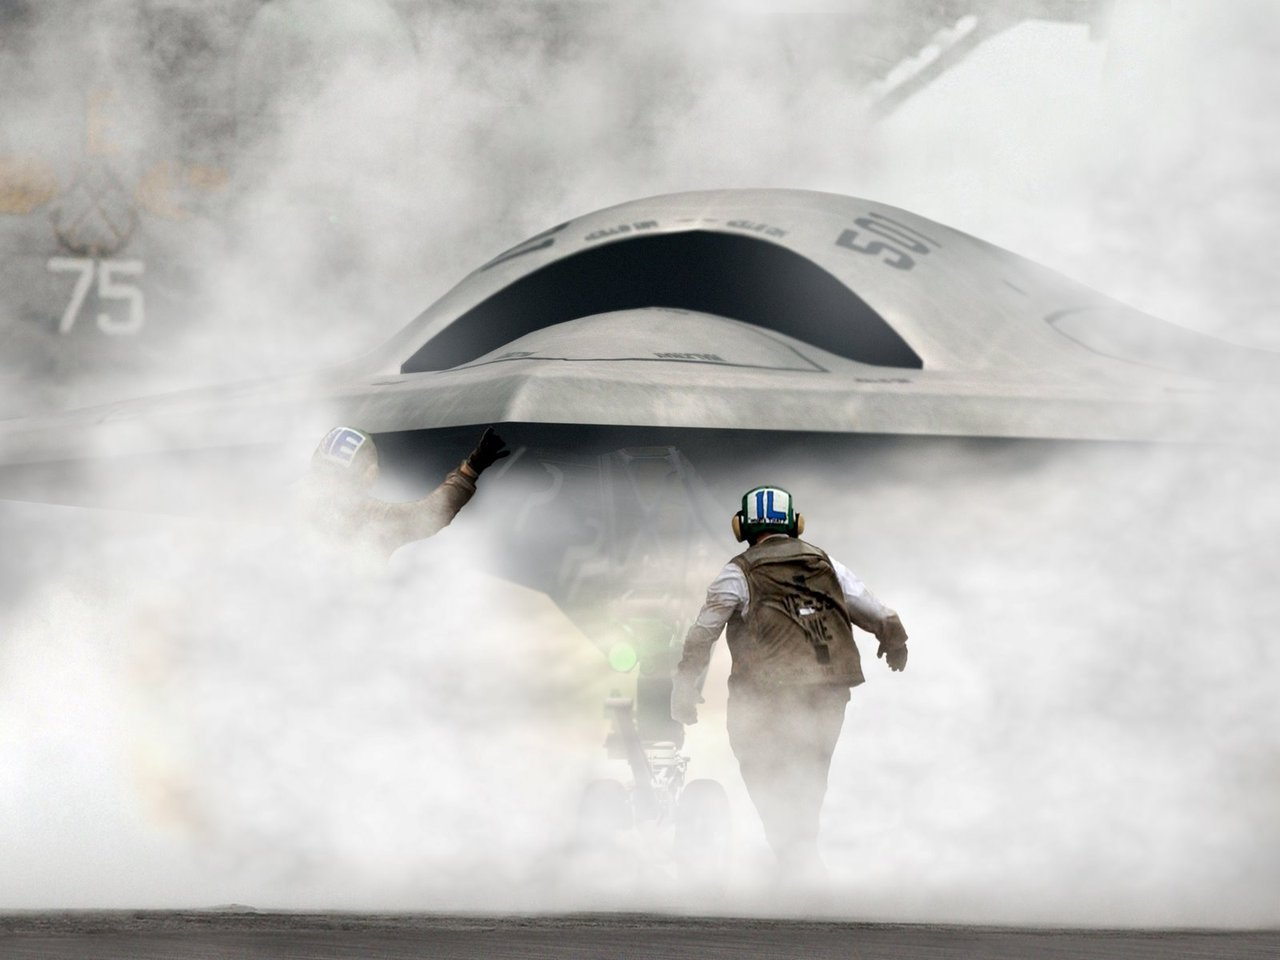 The US Navy prepairs the Northrop Grumman X-47B, an Unmanned Combat Air System (UCAS), for tests aboard the USS Harry S. Truman (CVN 75). The Navy is one year away from landing its first unmanned jet aircraft aboard a carrier after completing the most recent round of surrogate tests.